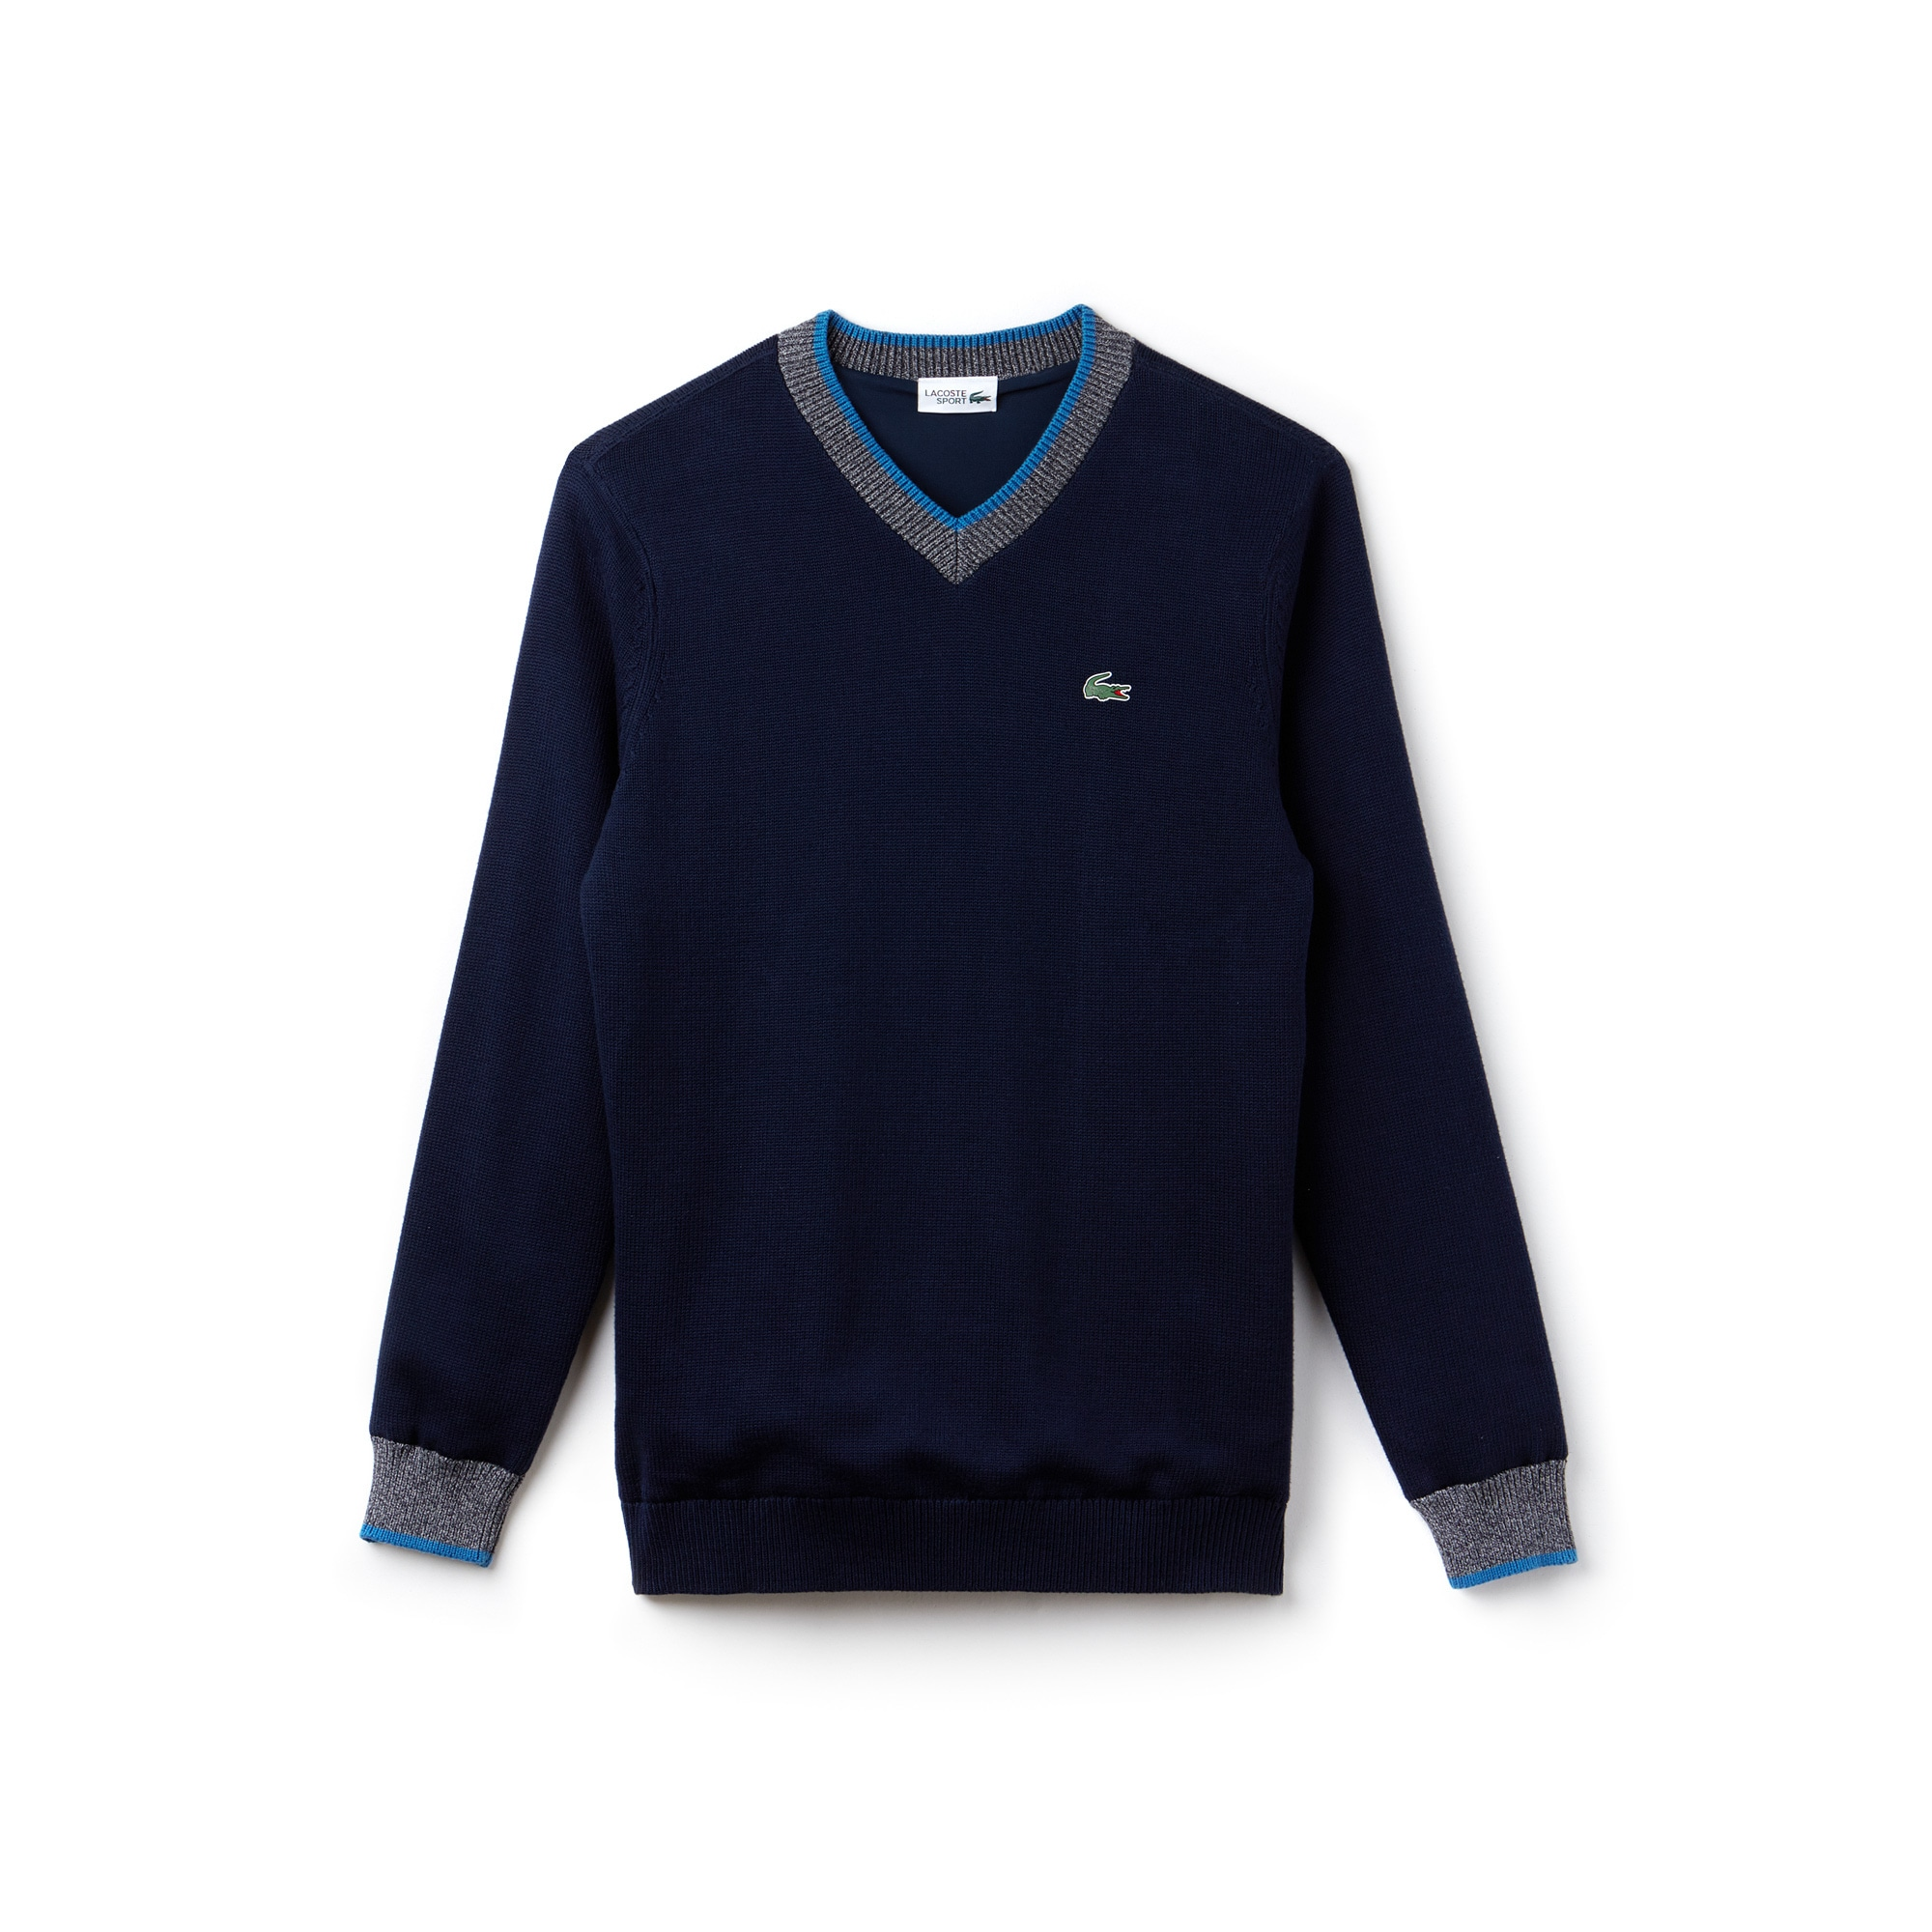 Men's SPORT V-neck Knit Golf Sweater